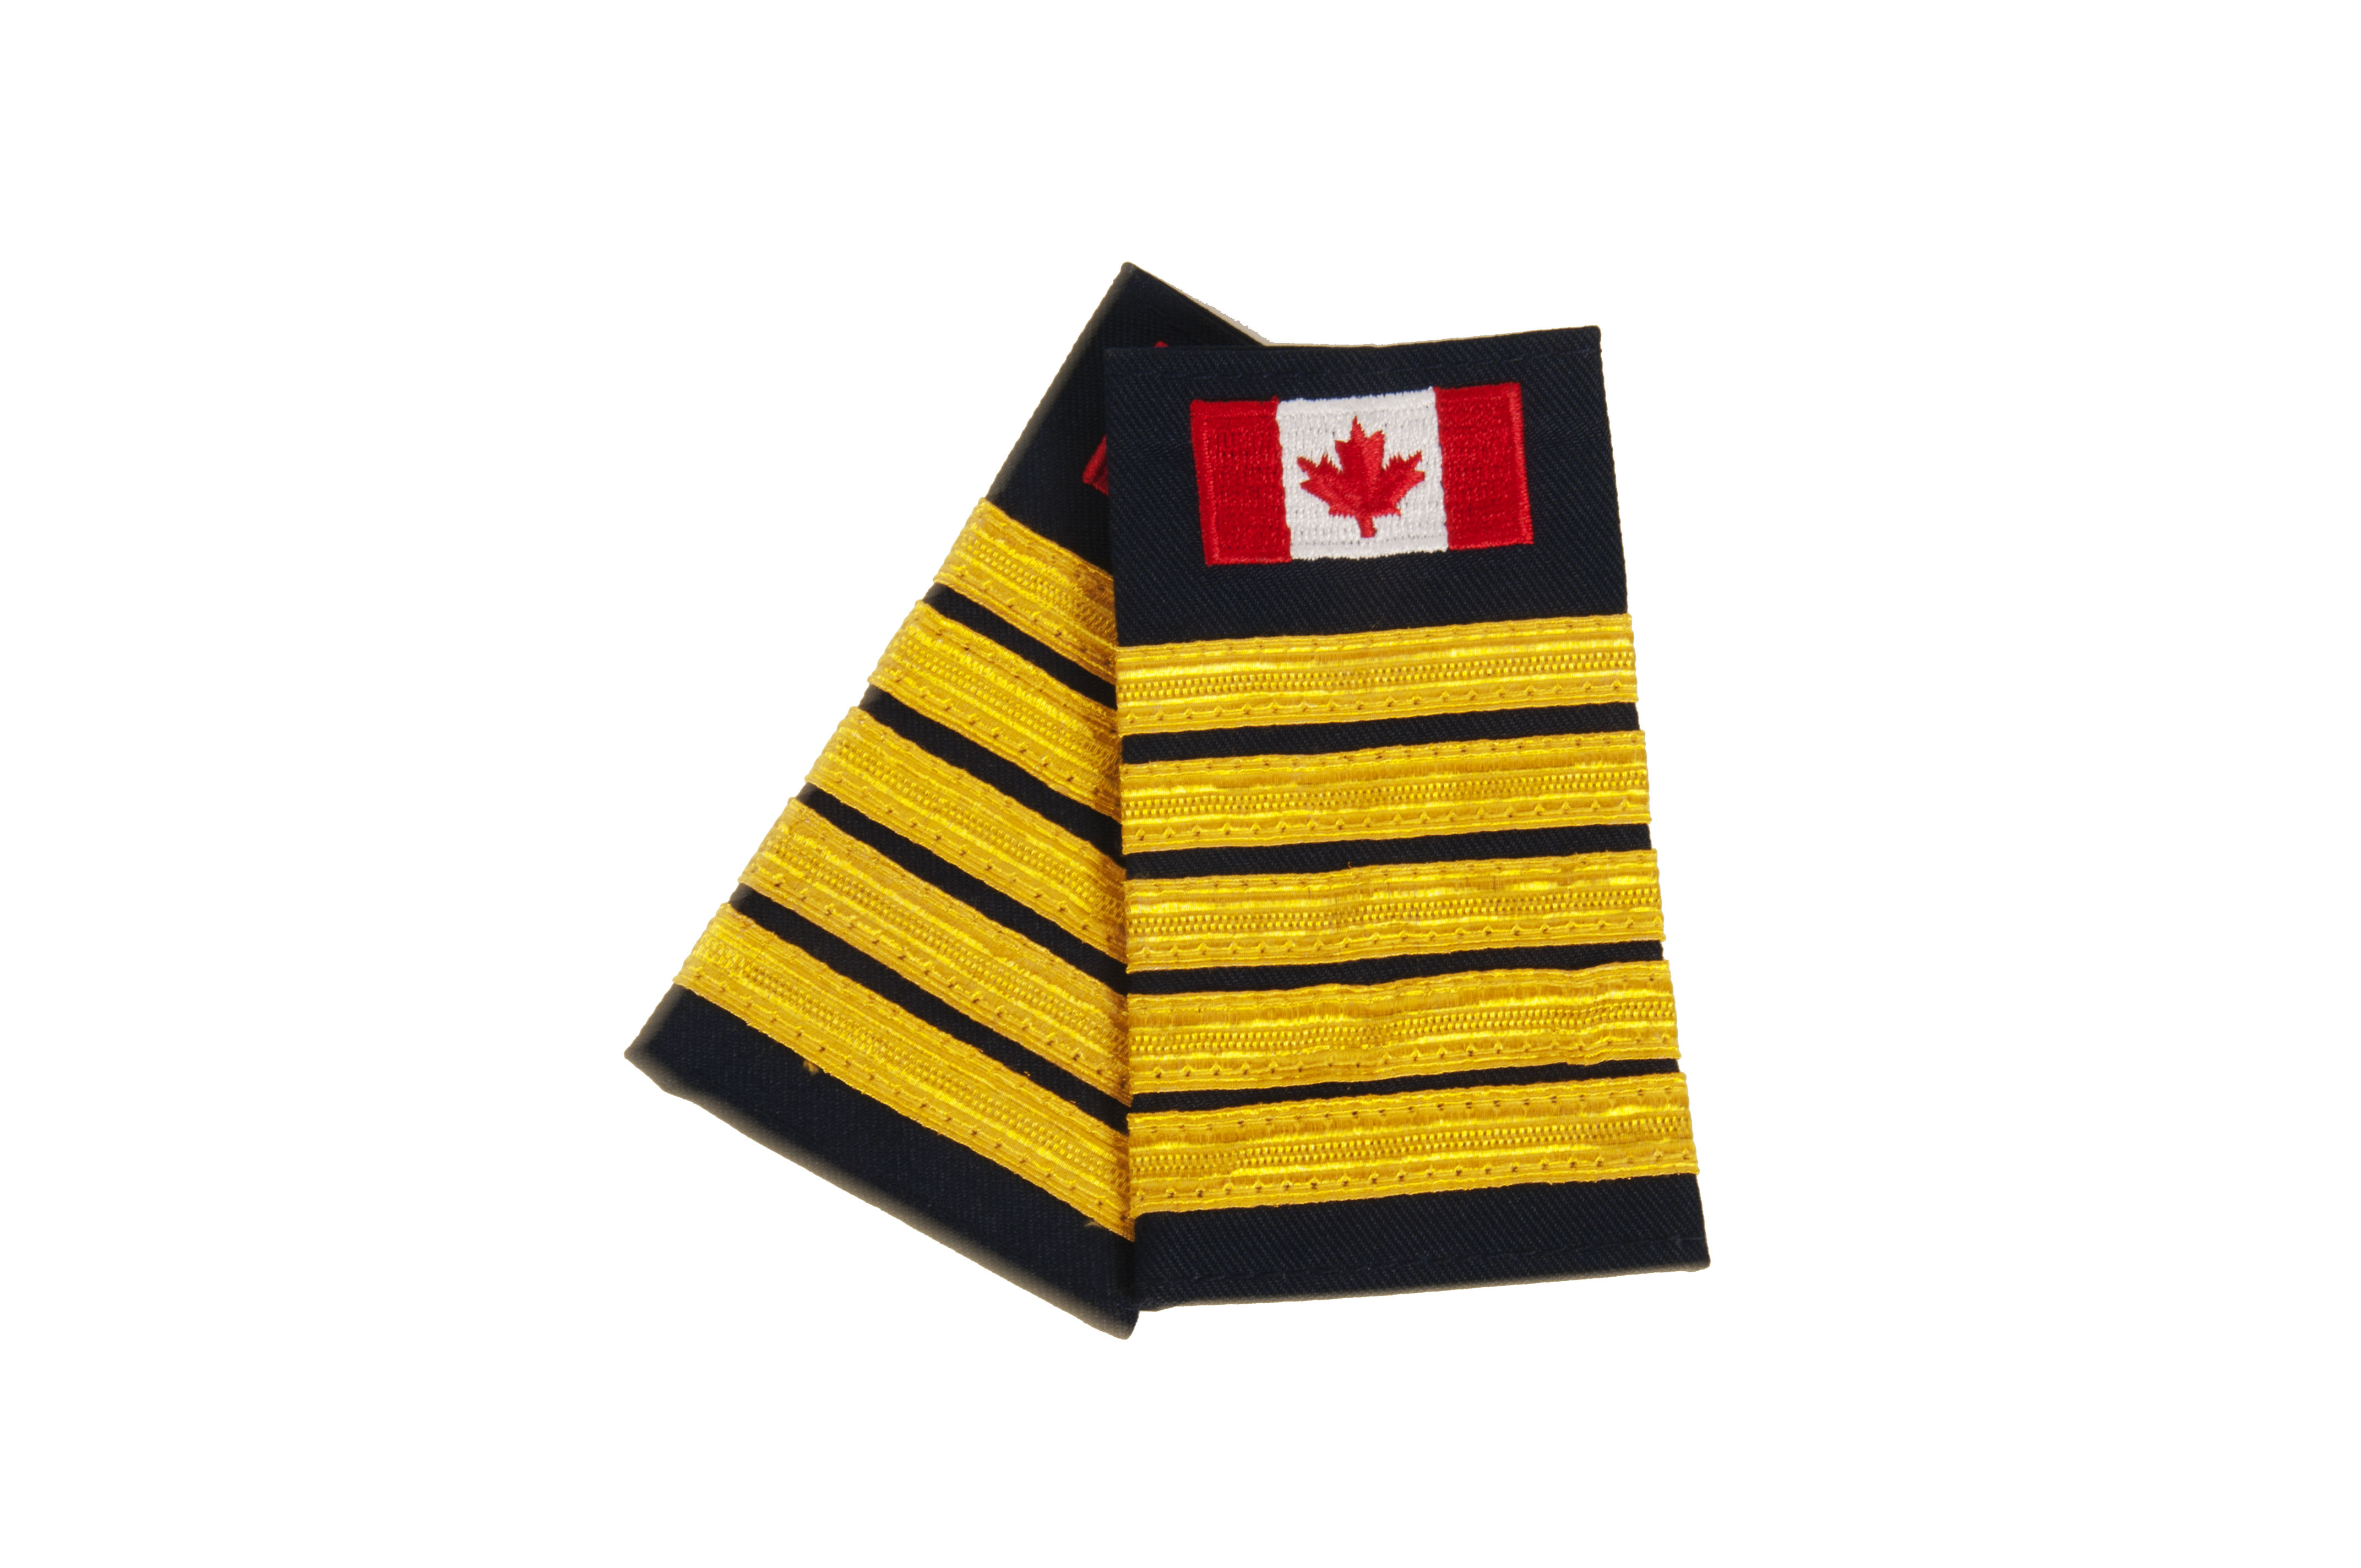 Fire Chief Slip-On with Canadian Flag (No Text)